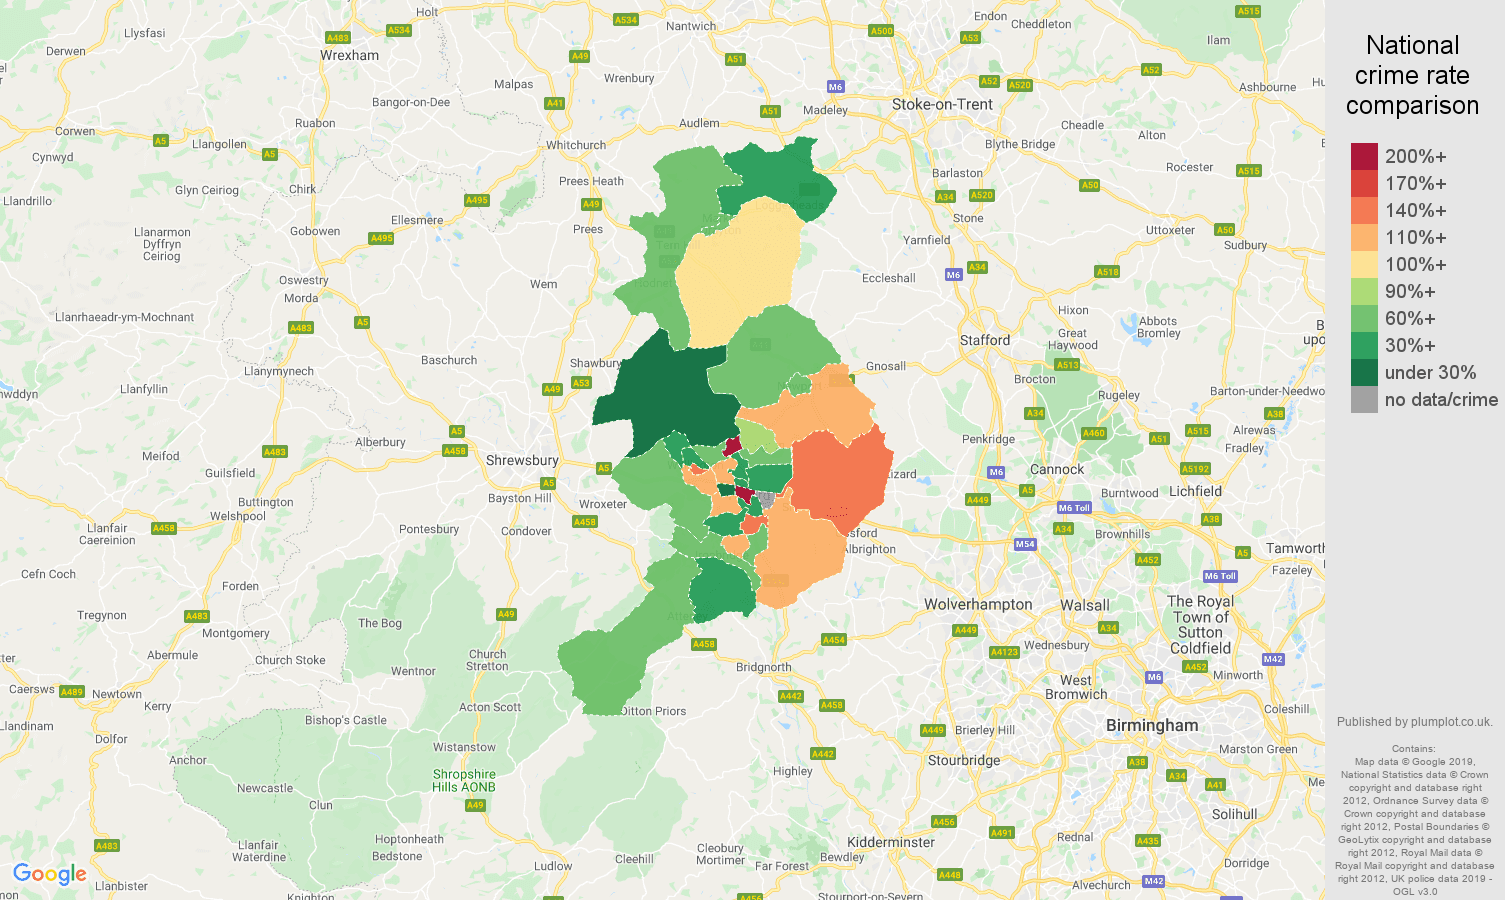 Telford other theft crime rate comparison map